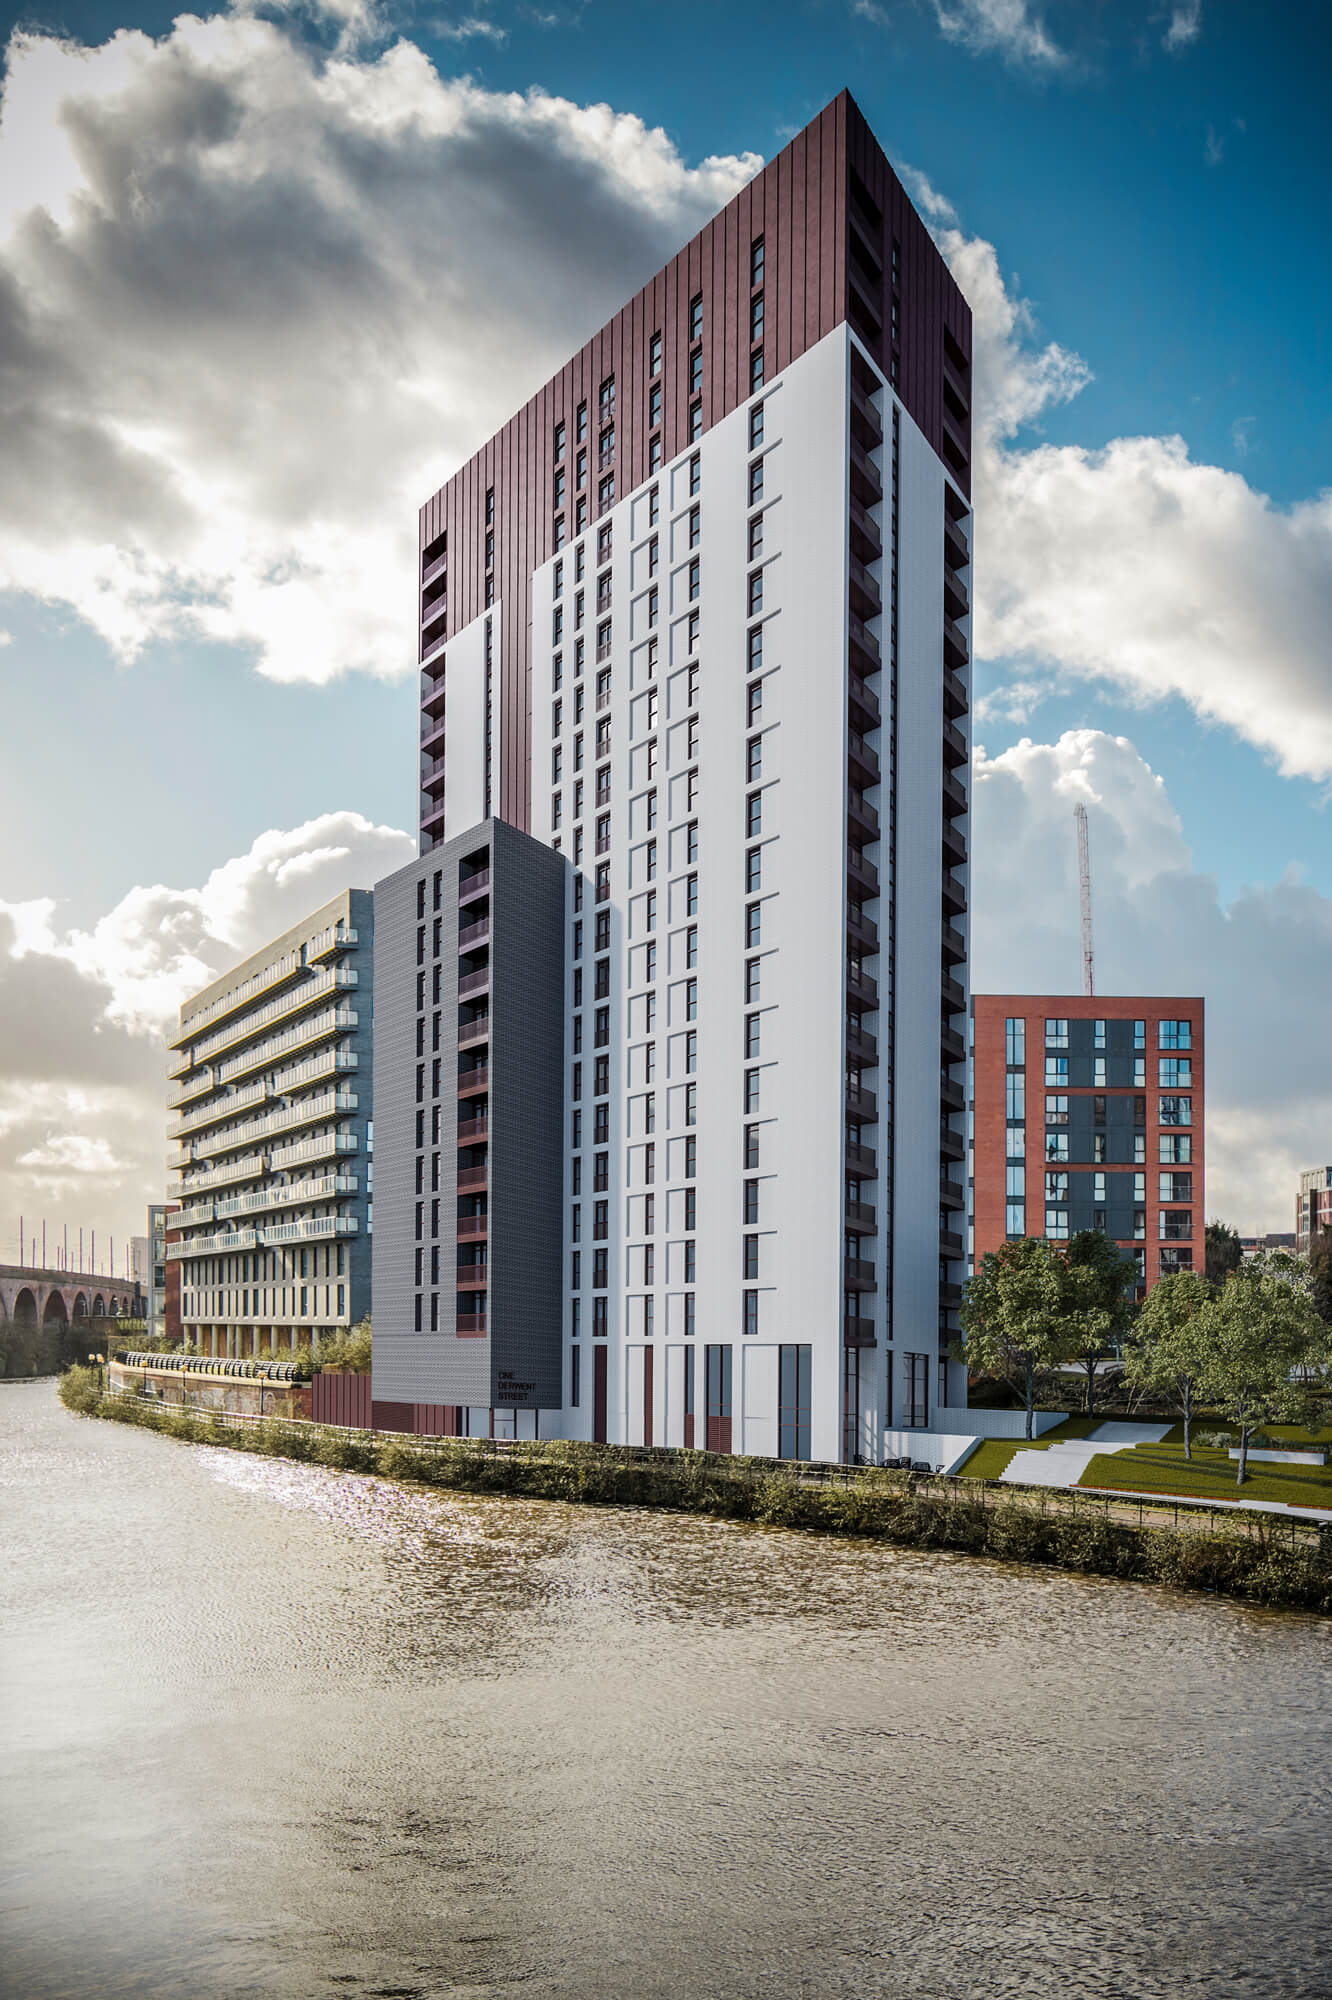 Urban CGI of Derwent Street high rise development, with a central building surrounded by a canal and passing clouds.